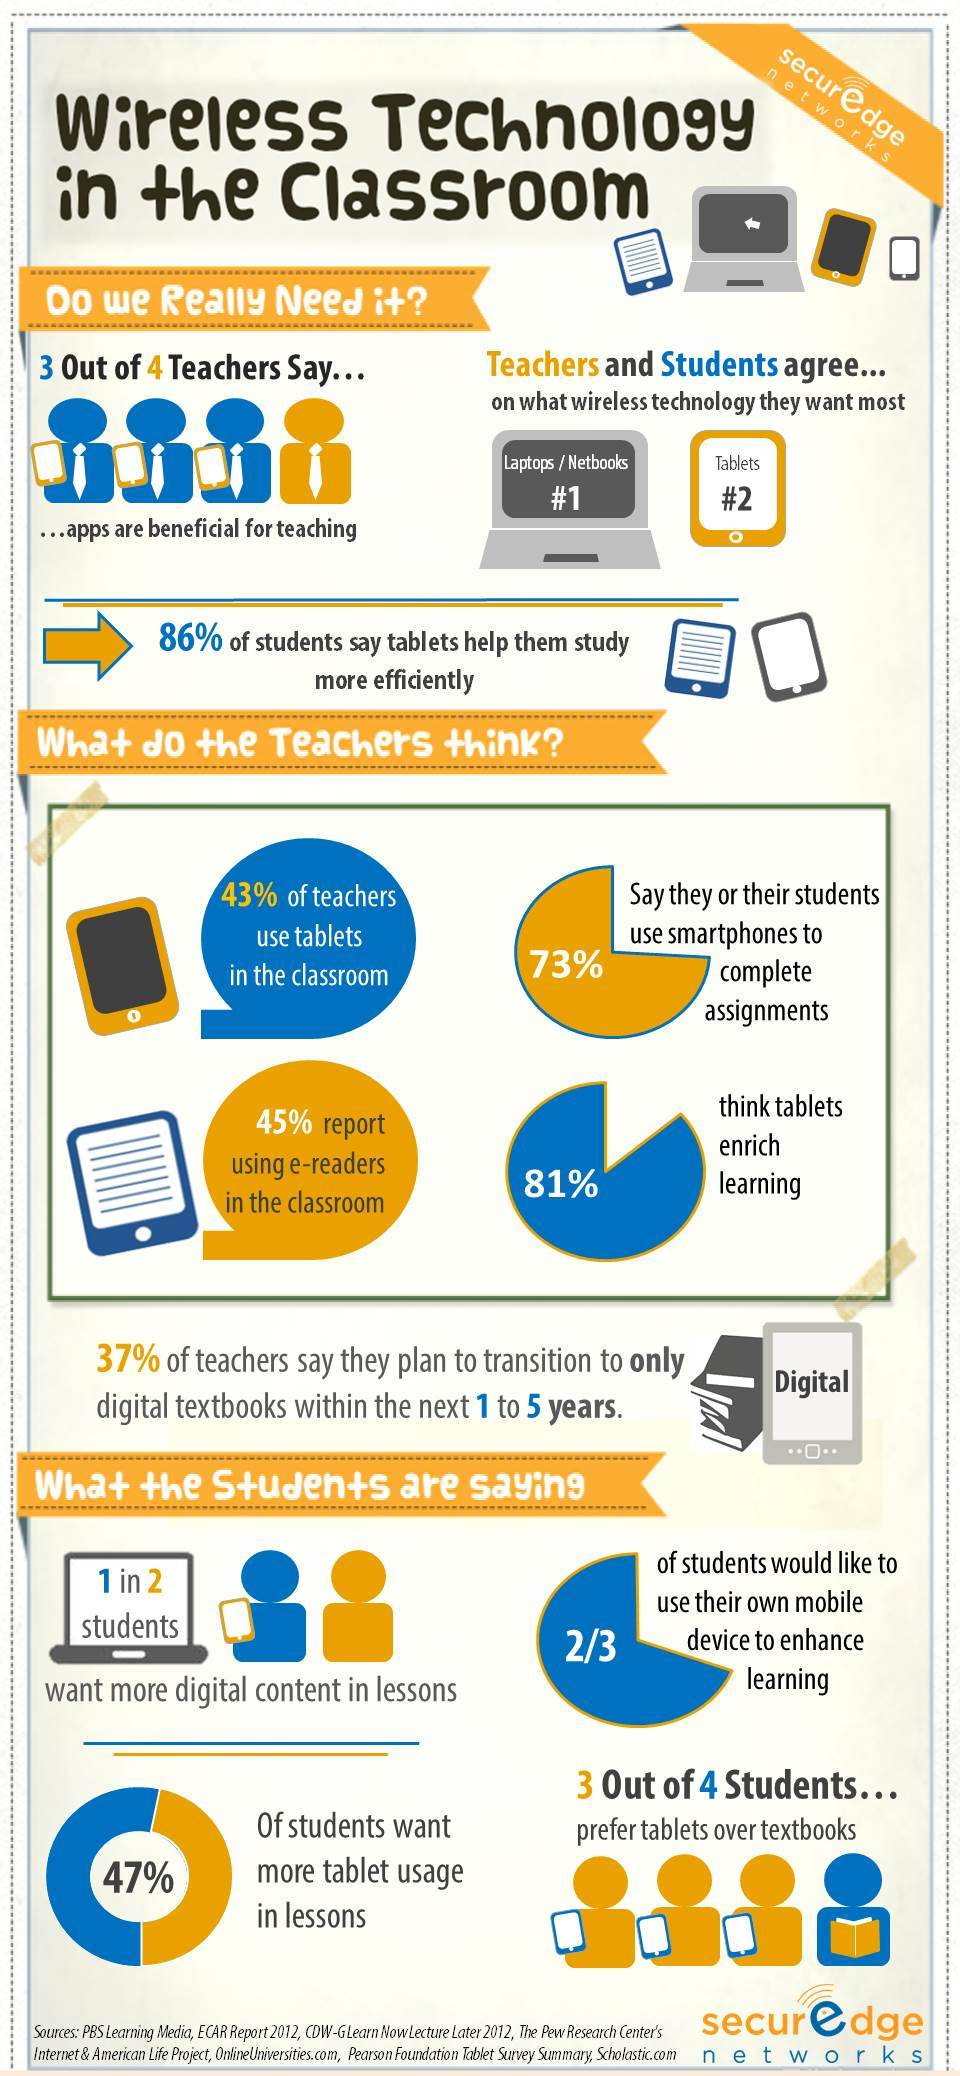 Wireless technology in the classroom